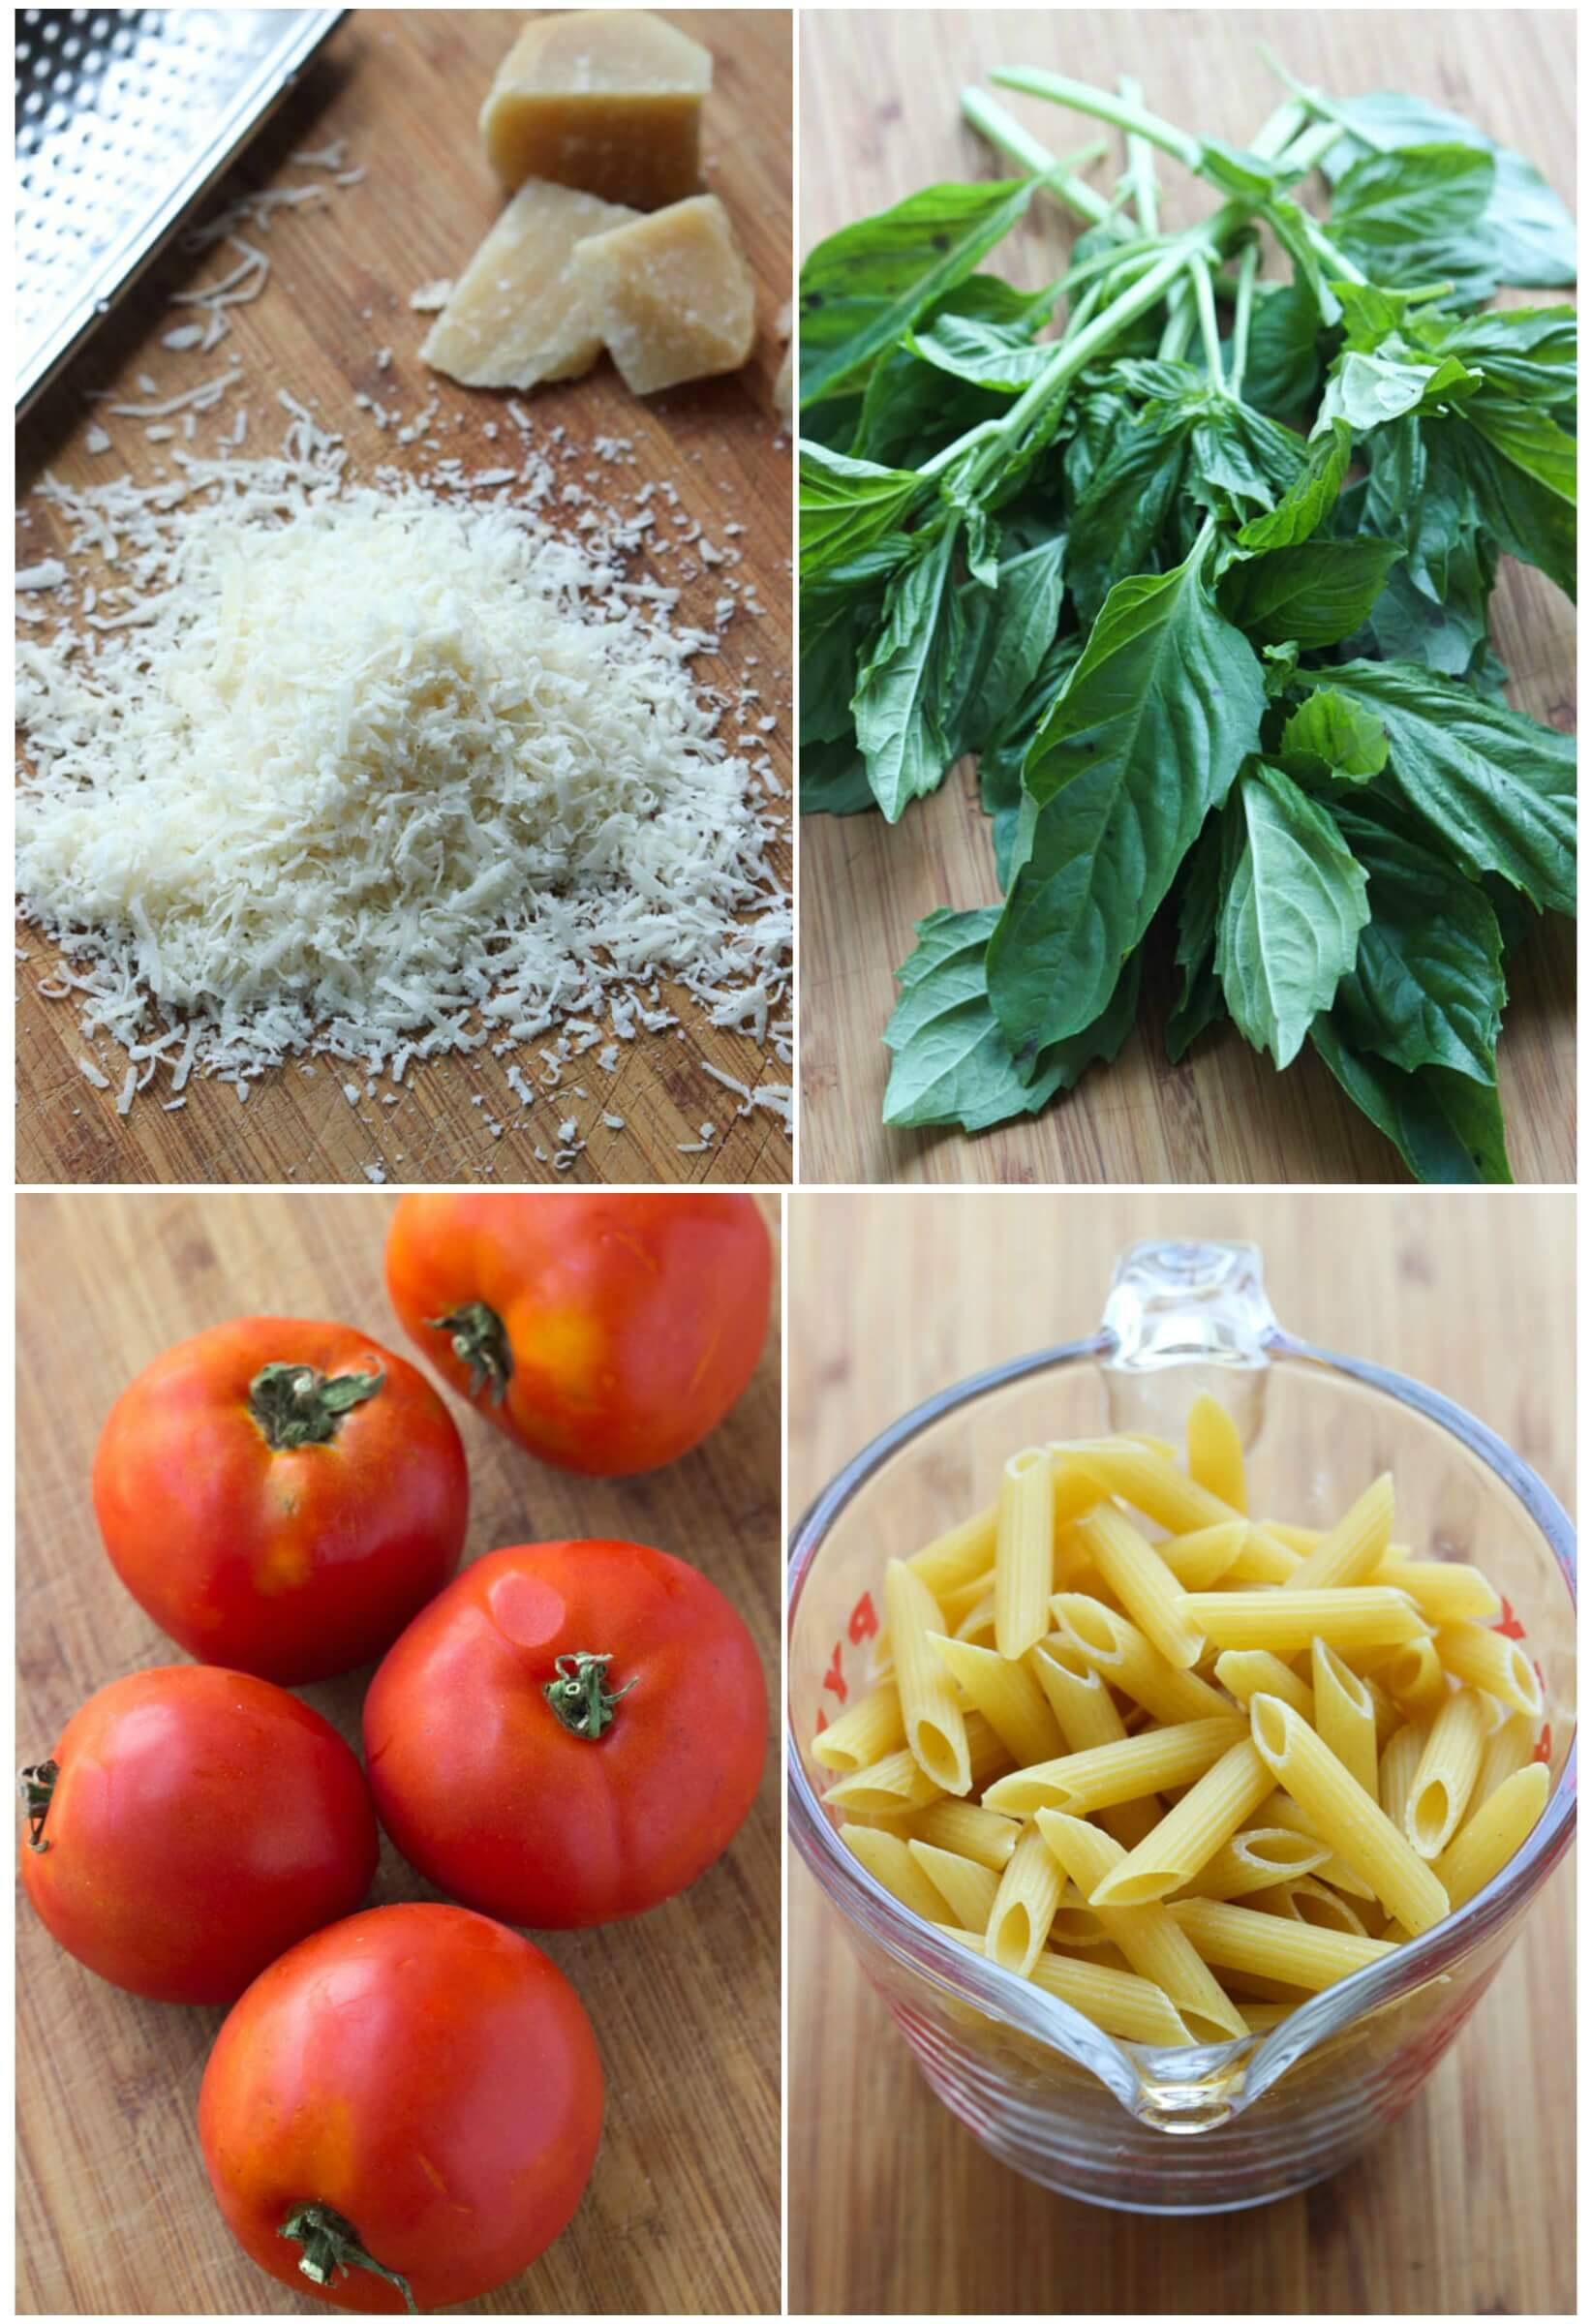 30 minute pasta made with simple, clean ingredients. Inspired by Margherita Pizza | littlebroken.com @littlebroken